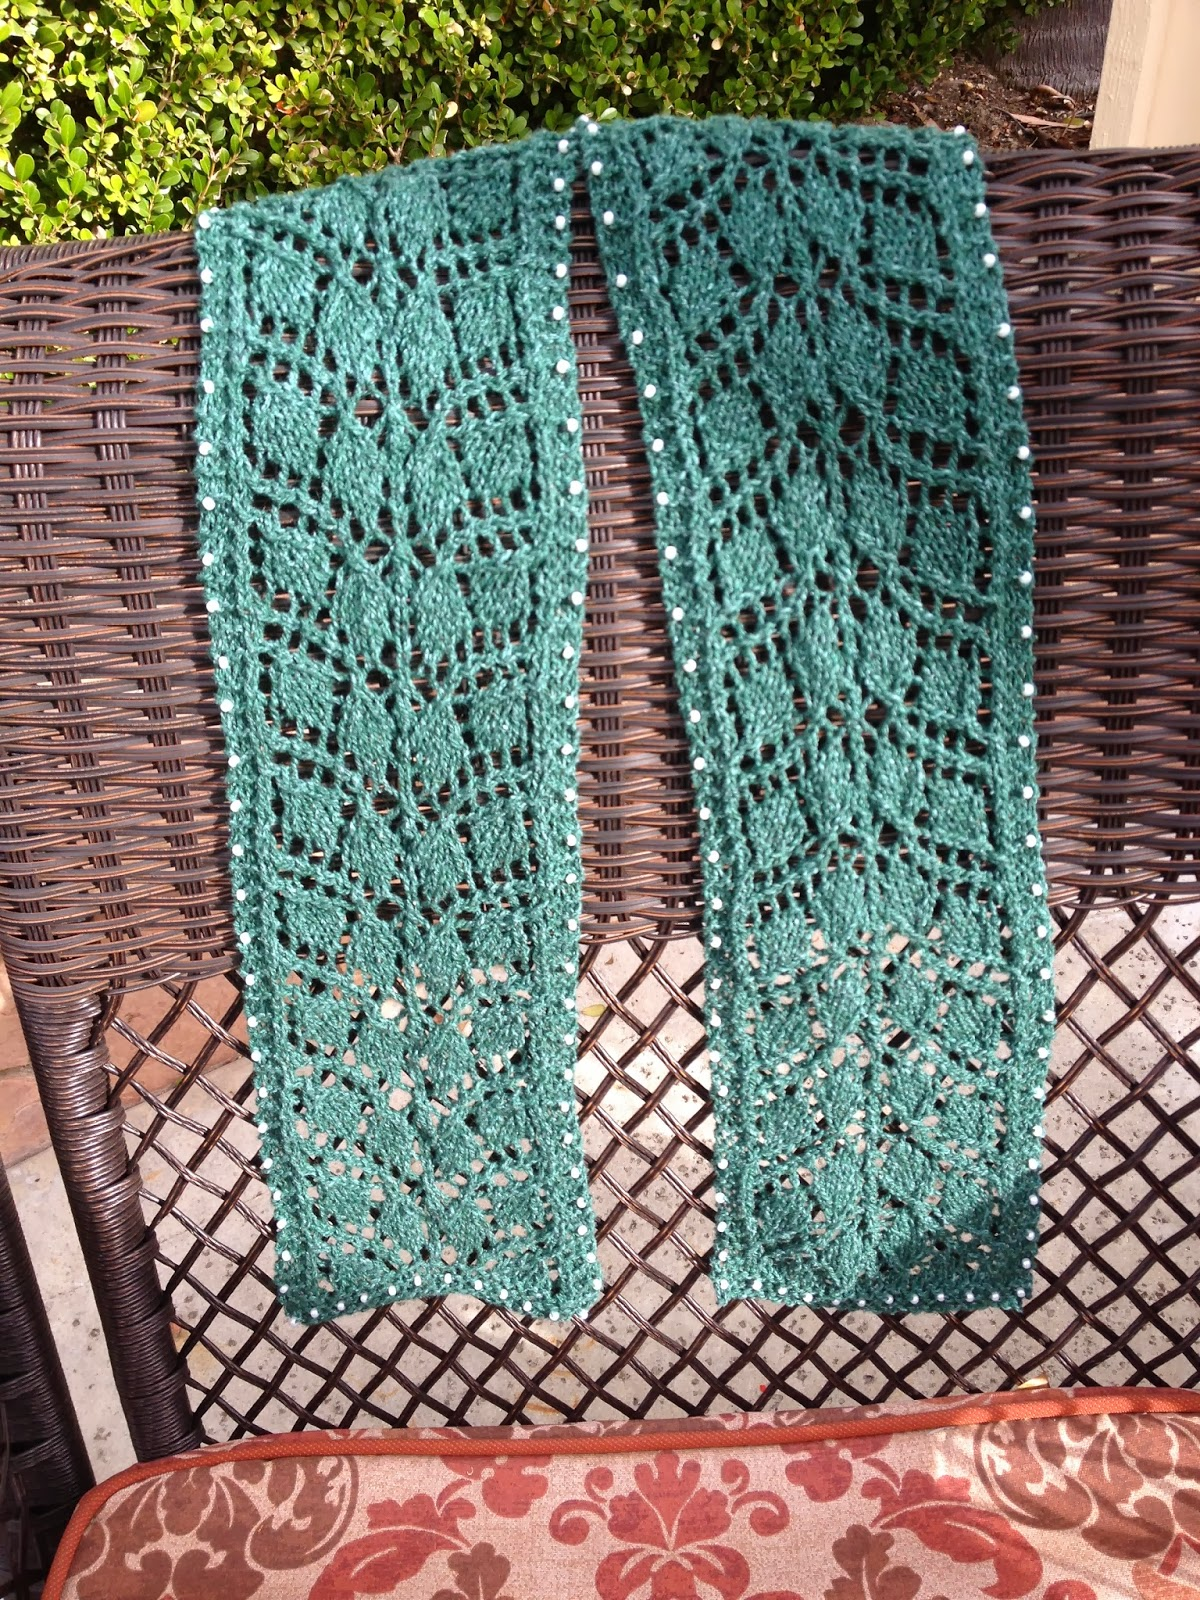 Lilly My Cat: Knitted Lacy Leaf Scarf with Beads